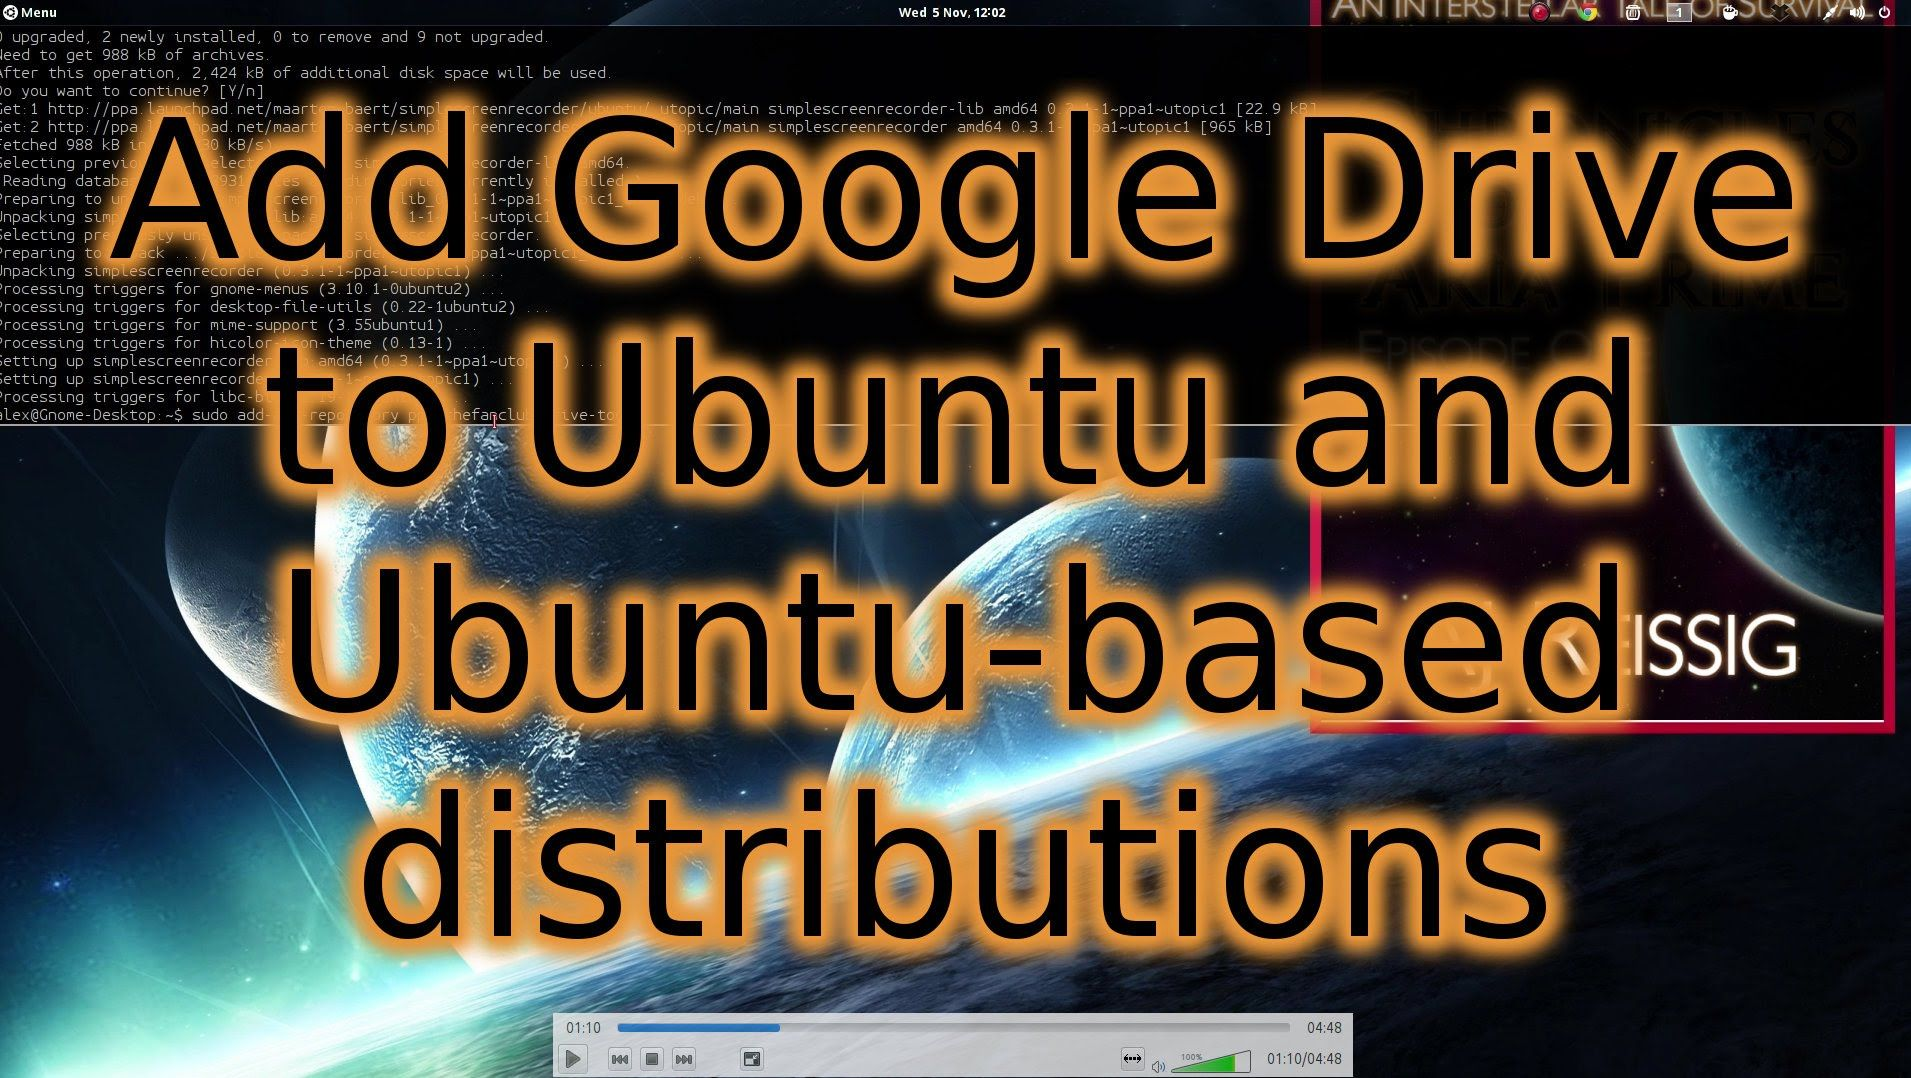 A quick tutorial showing how to link Google Drive to Ubuntu-based distributions.